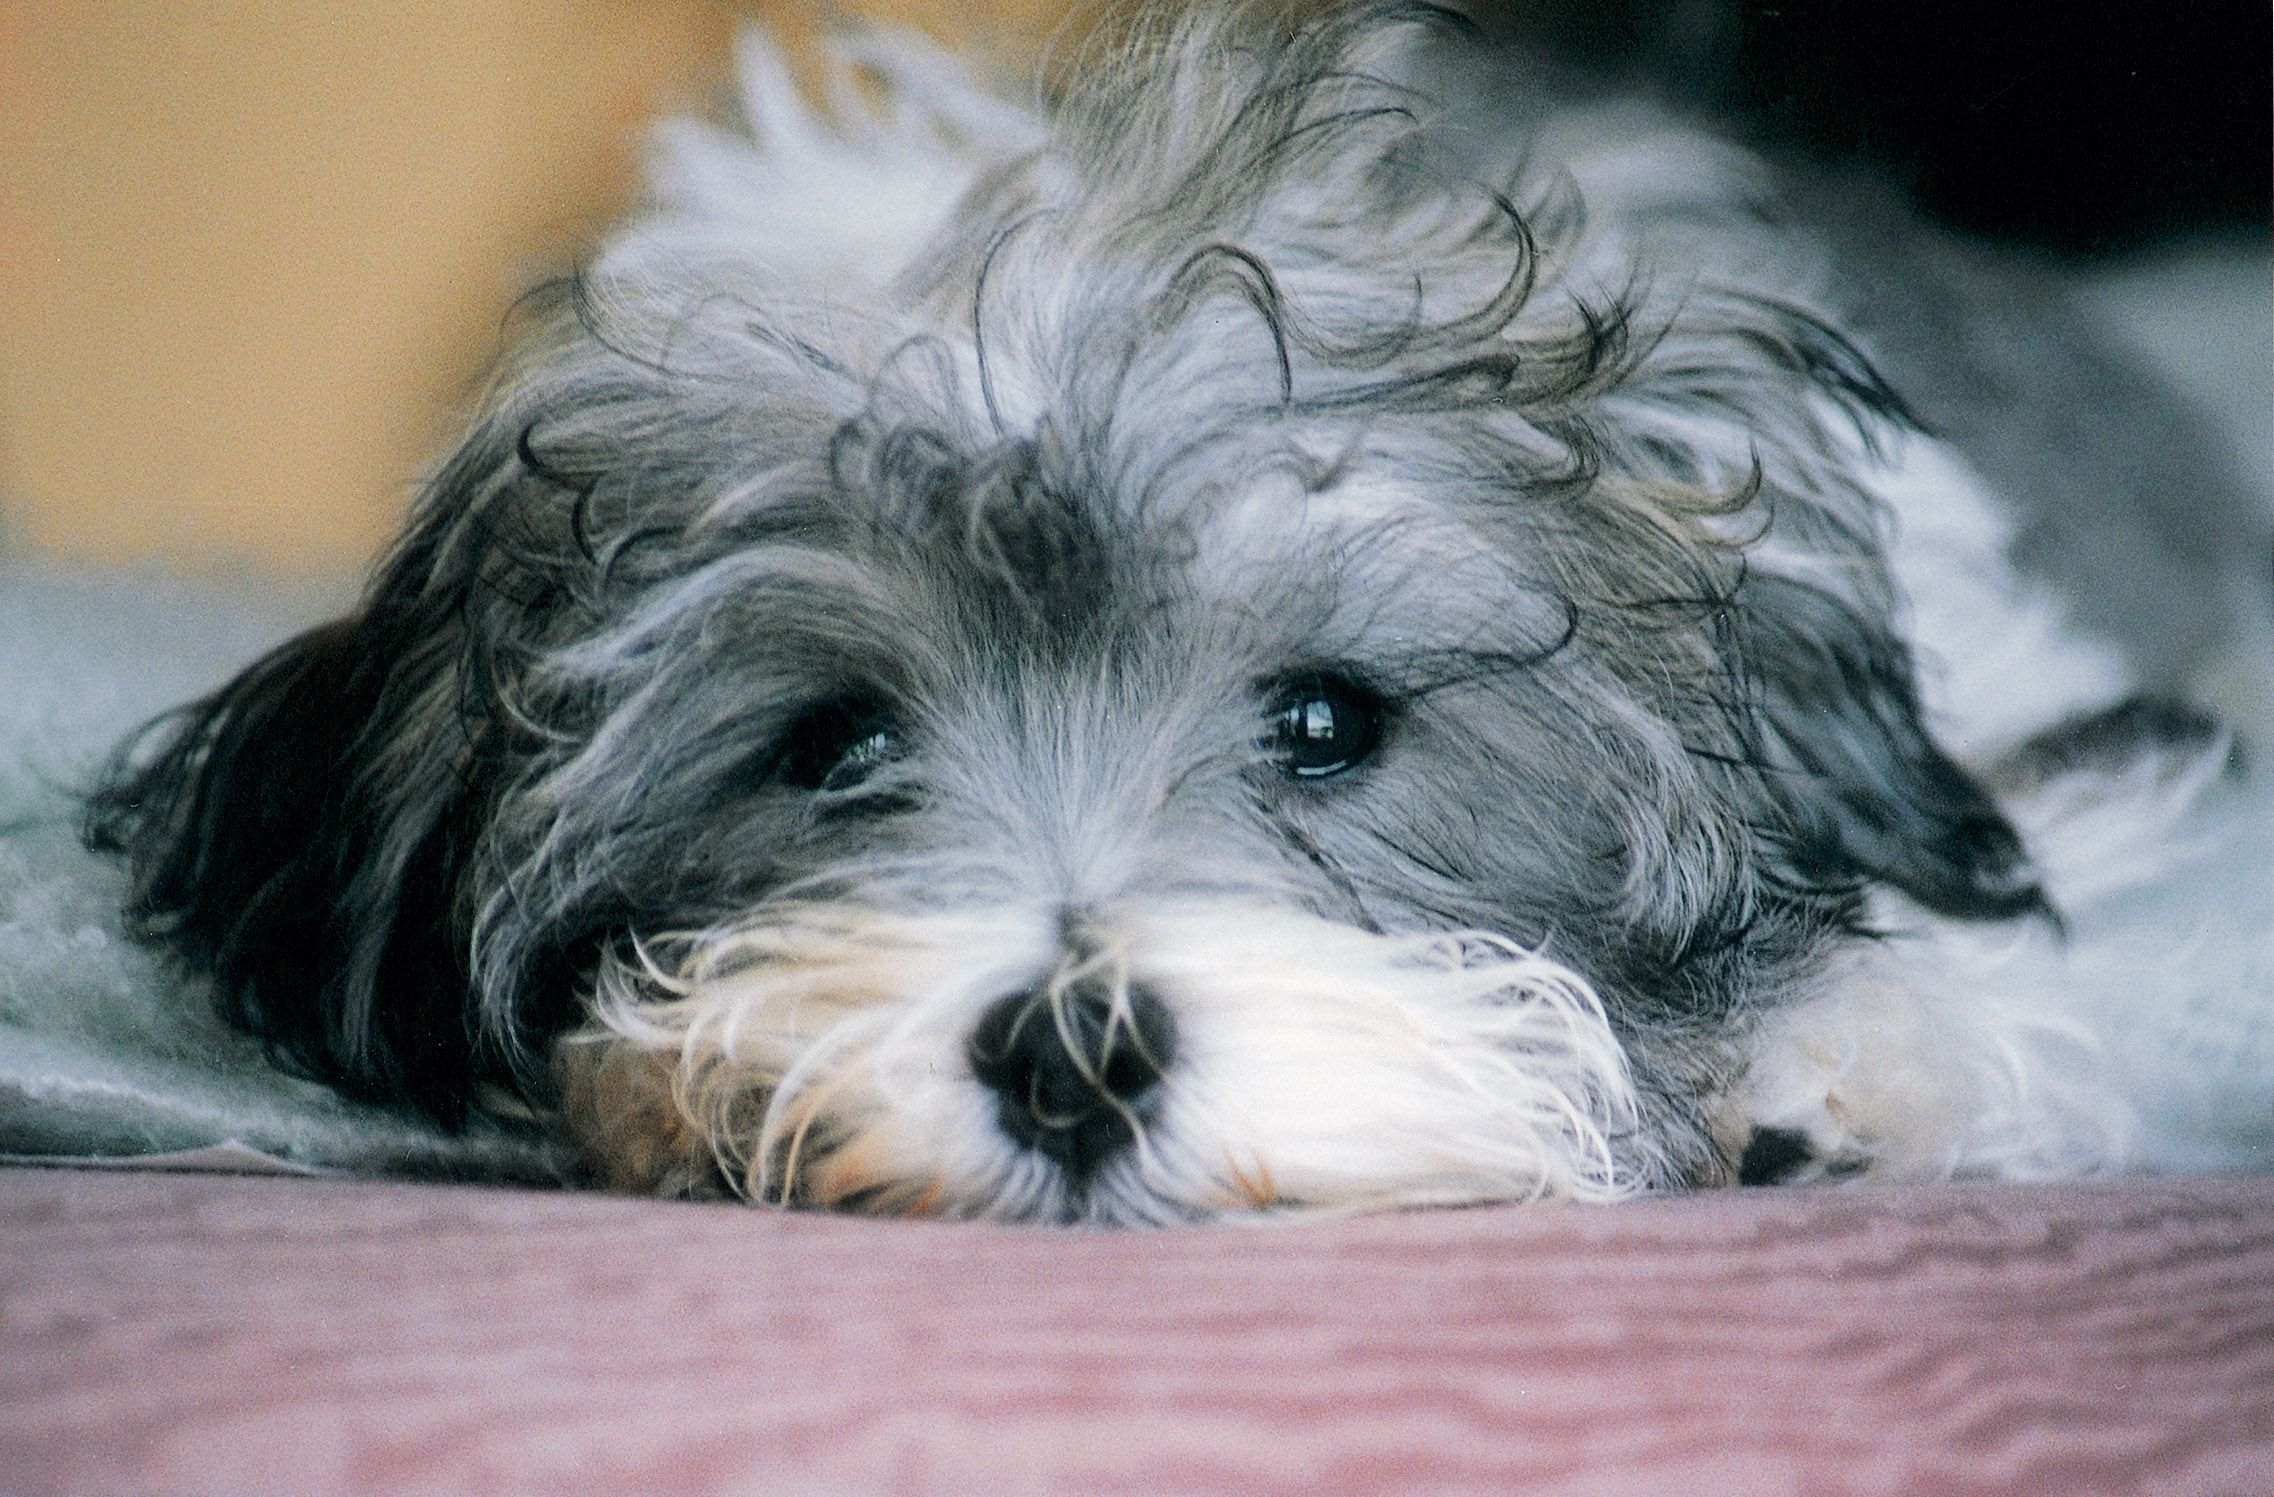 I will someday own a havanese :) And his name will be